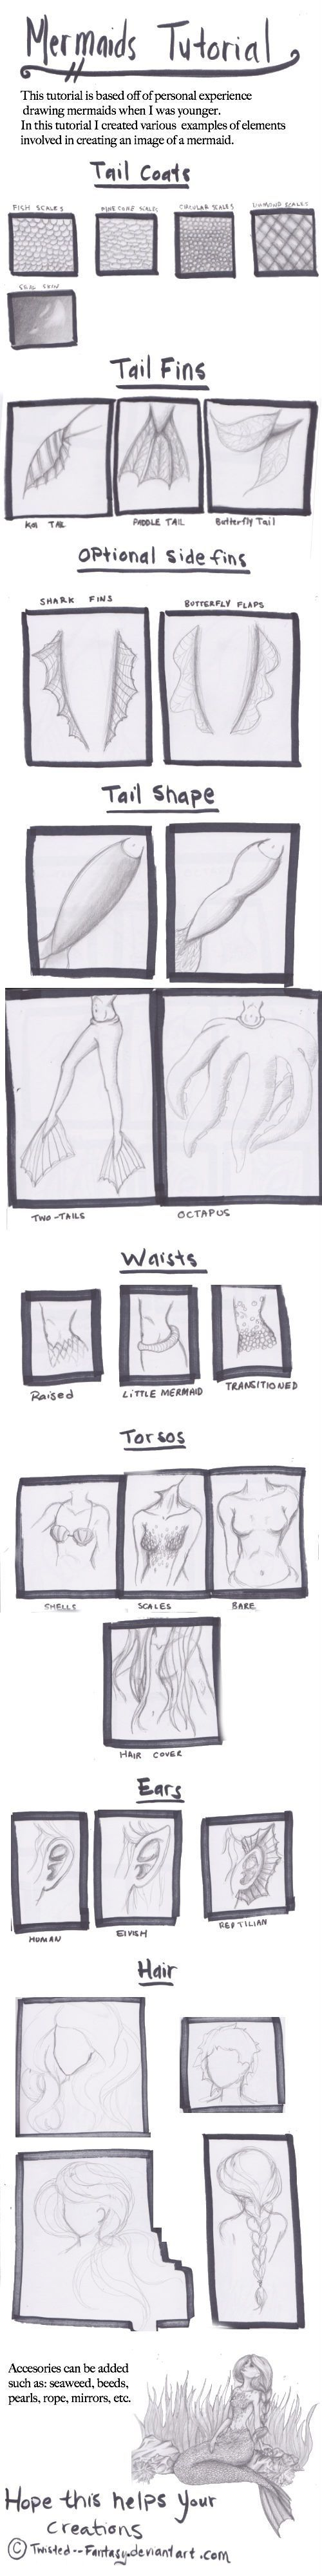 Mermaid Tutorial by Twisted--Fantasy on deviantART by marianne